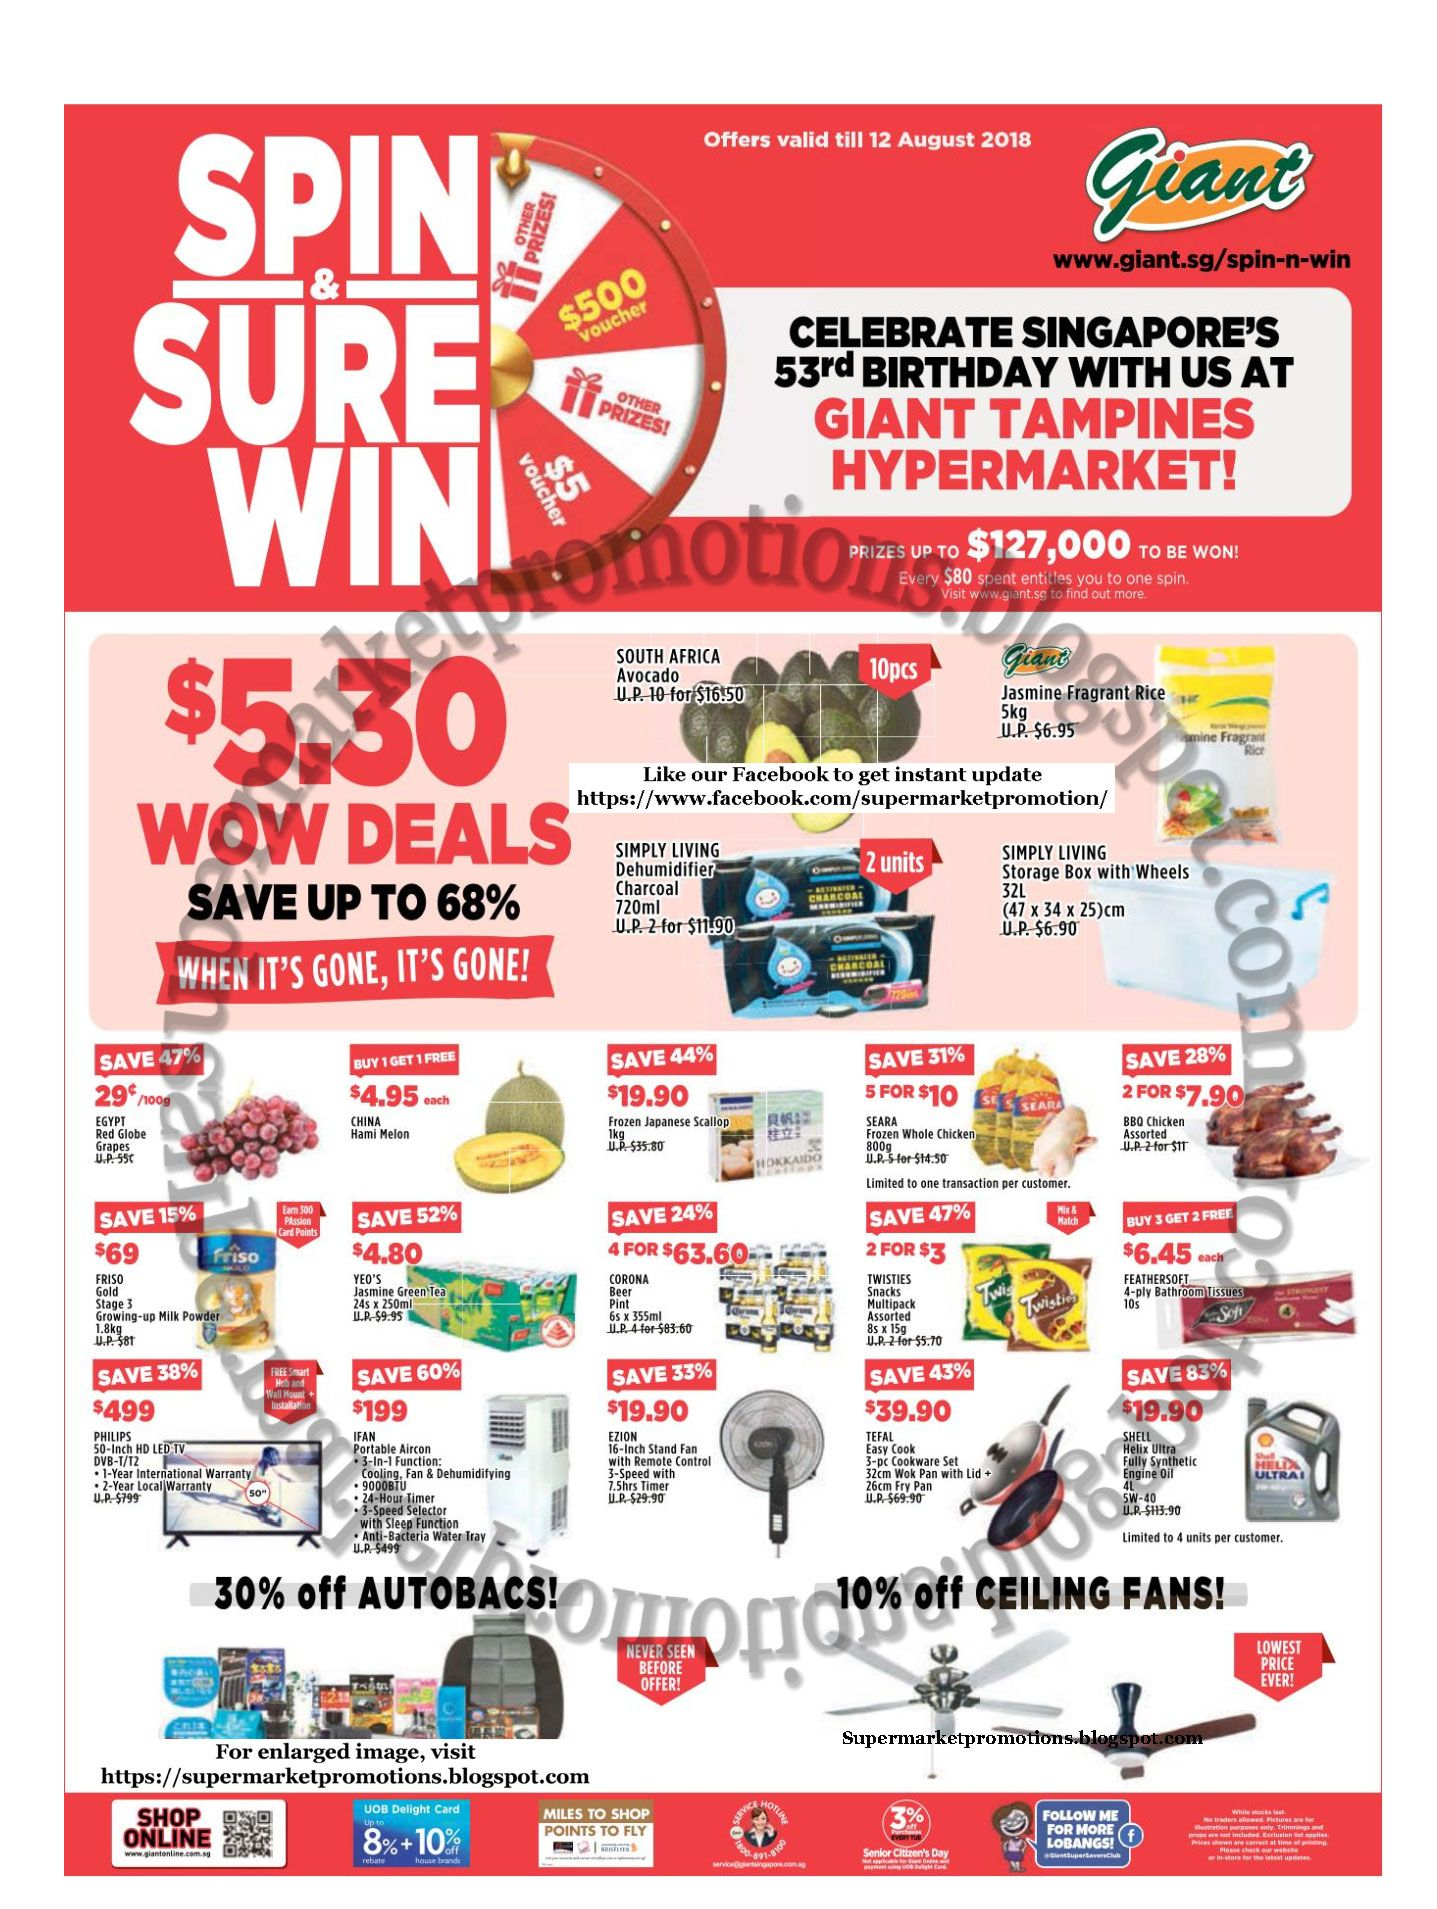 Giant Supermarket Hypermarket Promotion Giant National Day Promotion 10 12 August 2018 Nationa Day Deals At Giant Tampine Day National Day Giant Supermarket